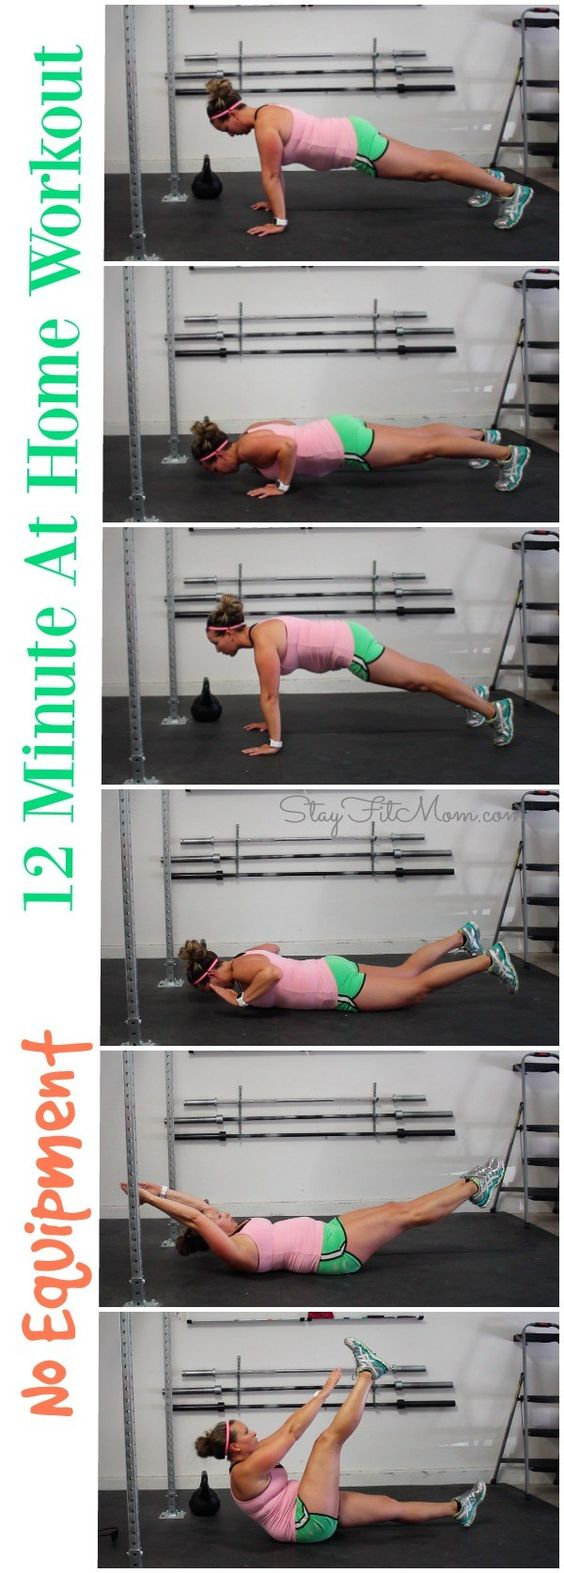 12 Minute At Home Workout – Stay Fit Mom